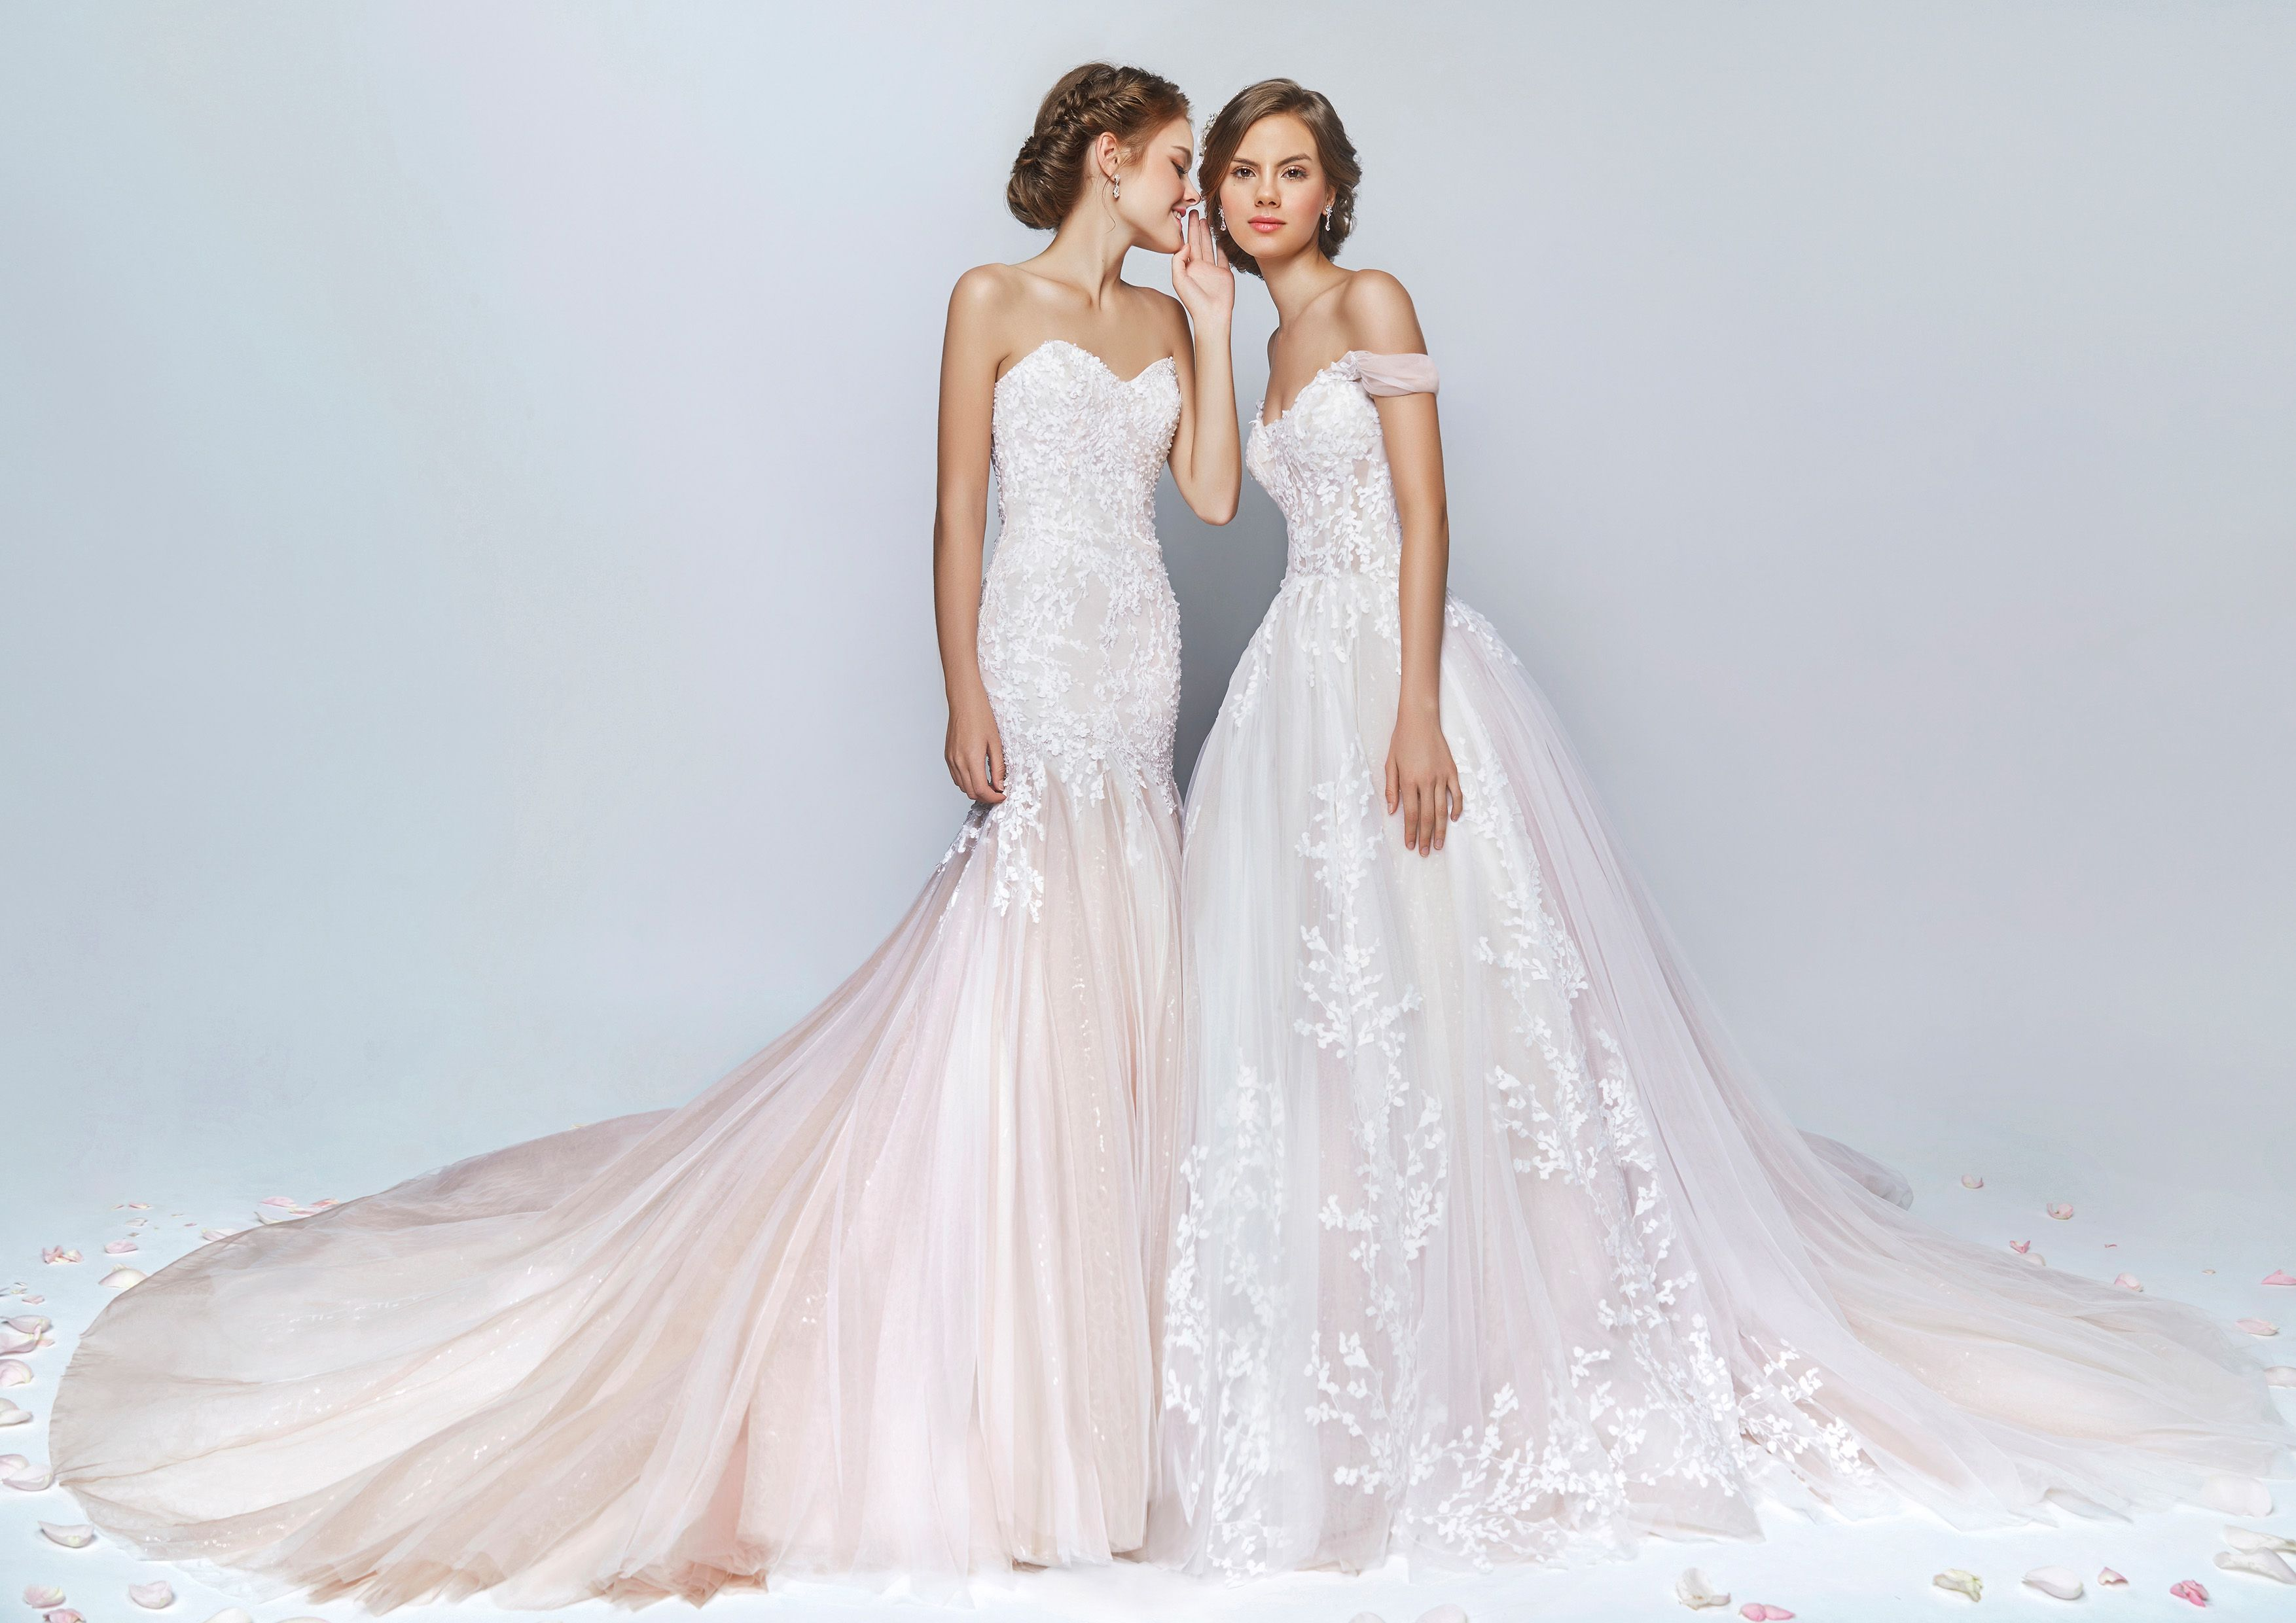 Wedding dresses rental  Coloured but subtle Wedding Dresses You Will Fall In Love With